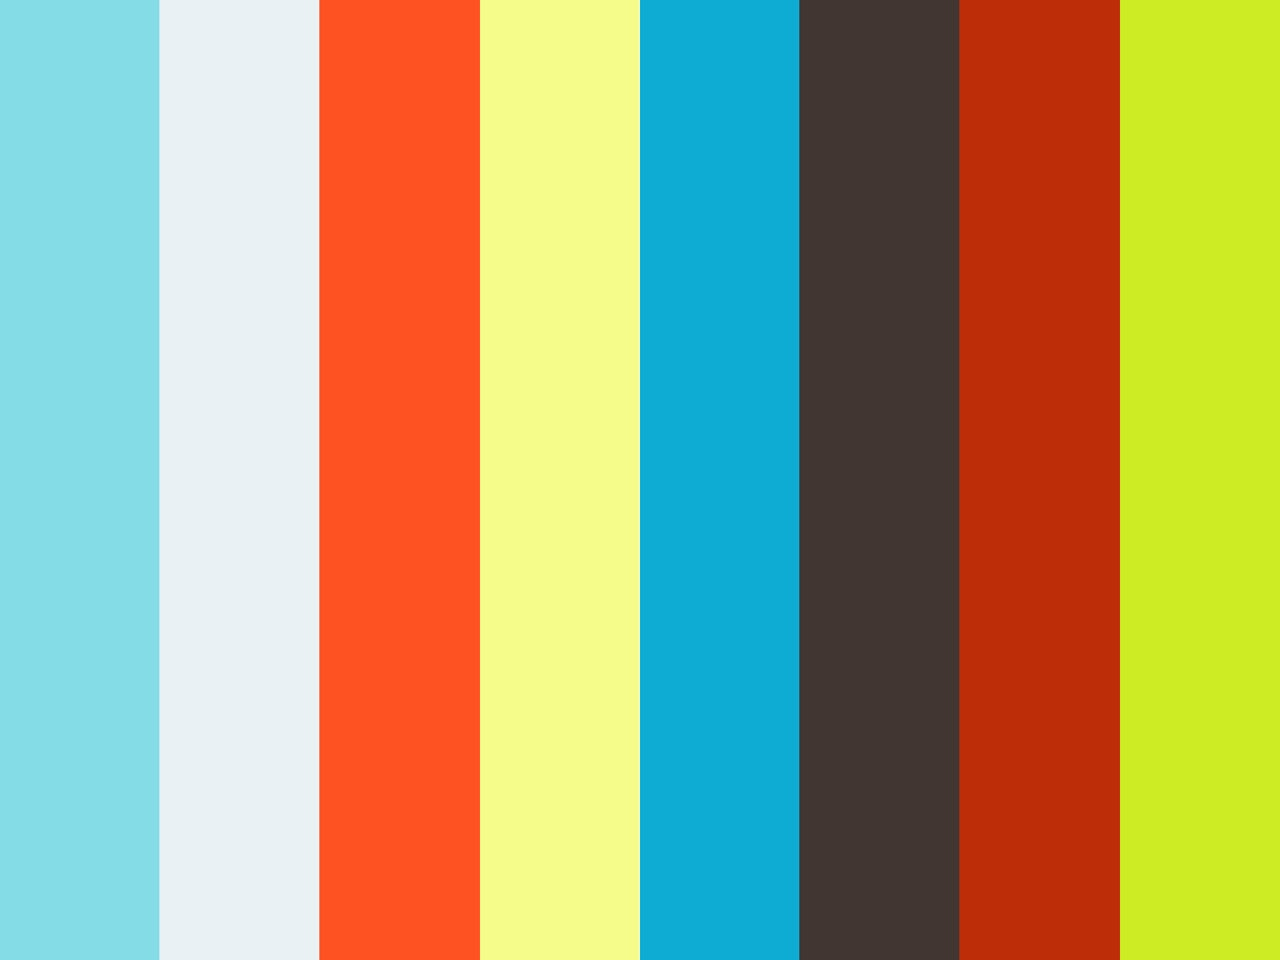 City Commission Meeting - January 11, 2016